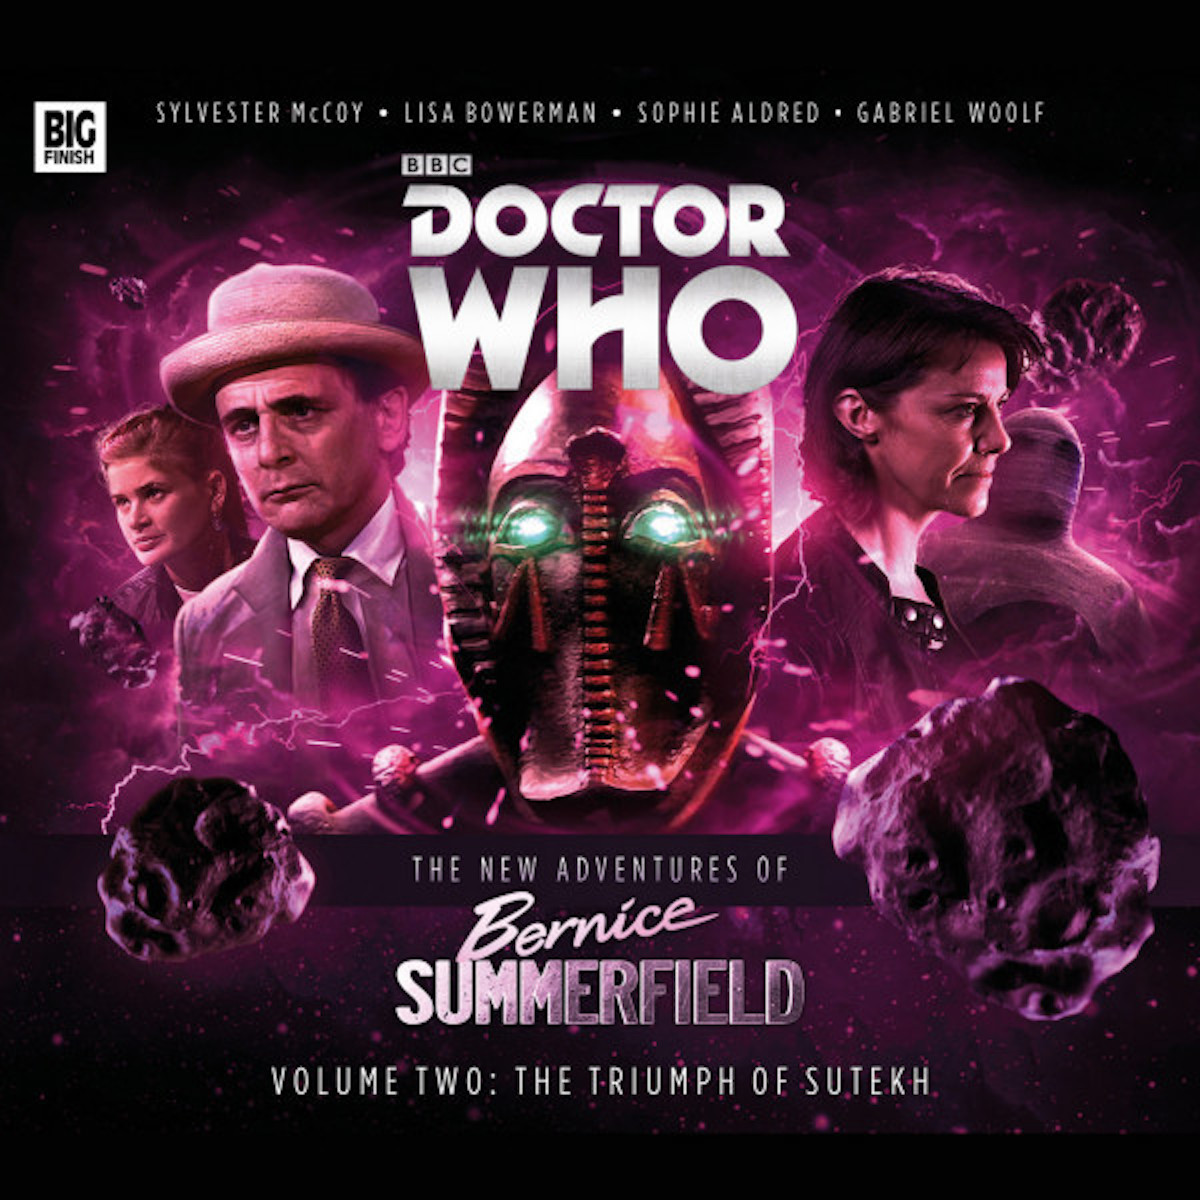 The New Adventures of Bernice Summerfield Volume 2 The Triumph of Sutekh